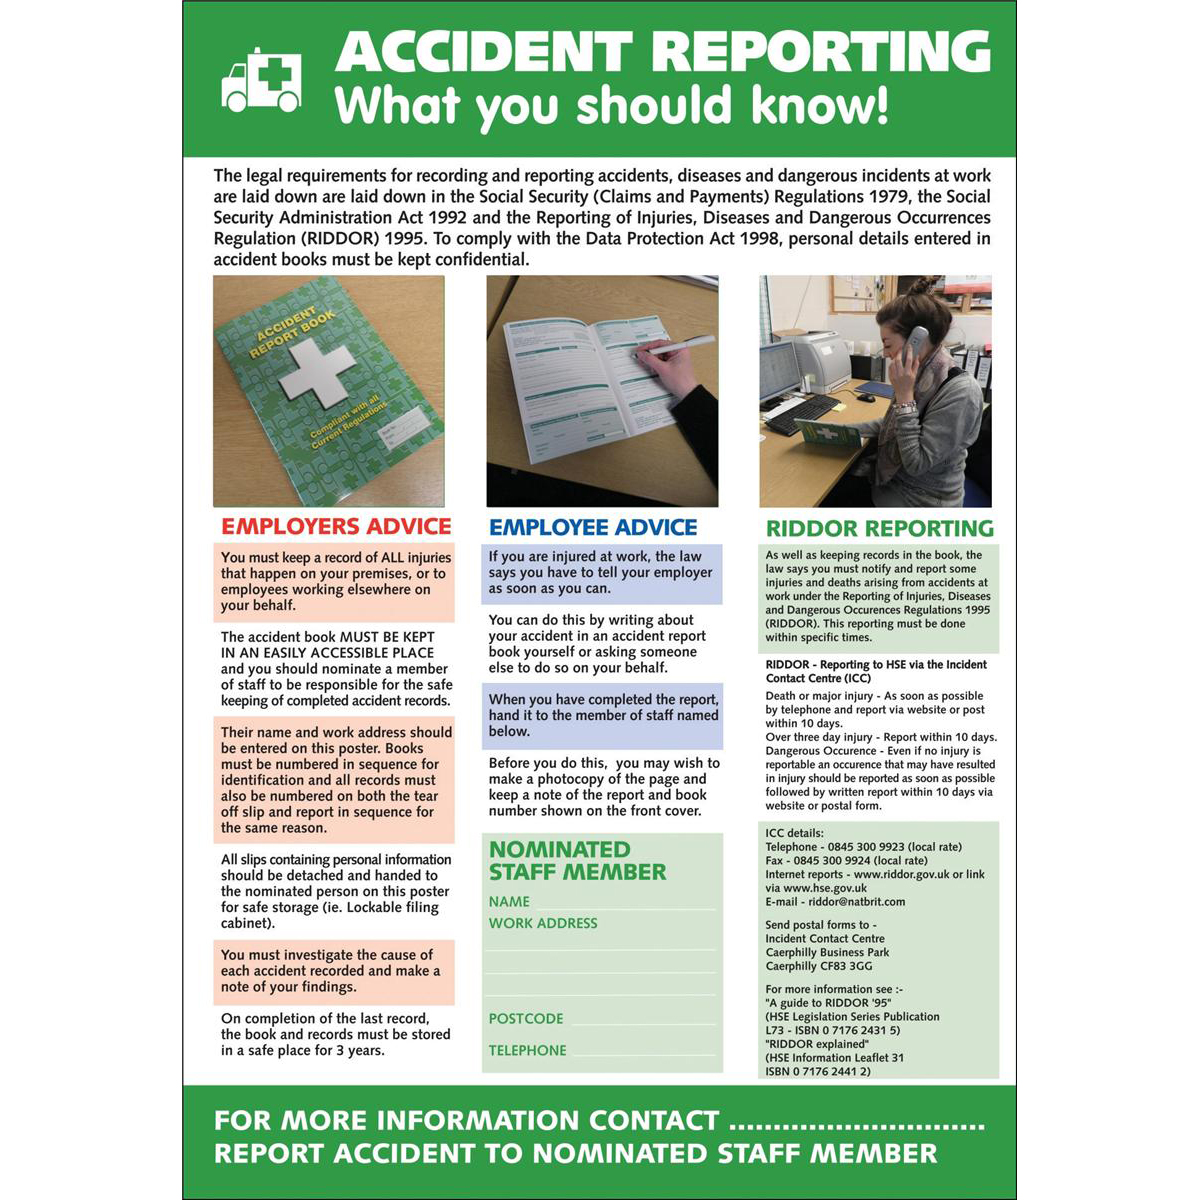 Stewart Superior Accident Reporting Laminated Support Poster